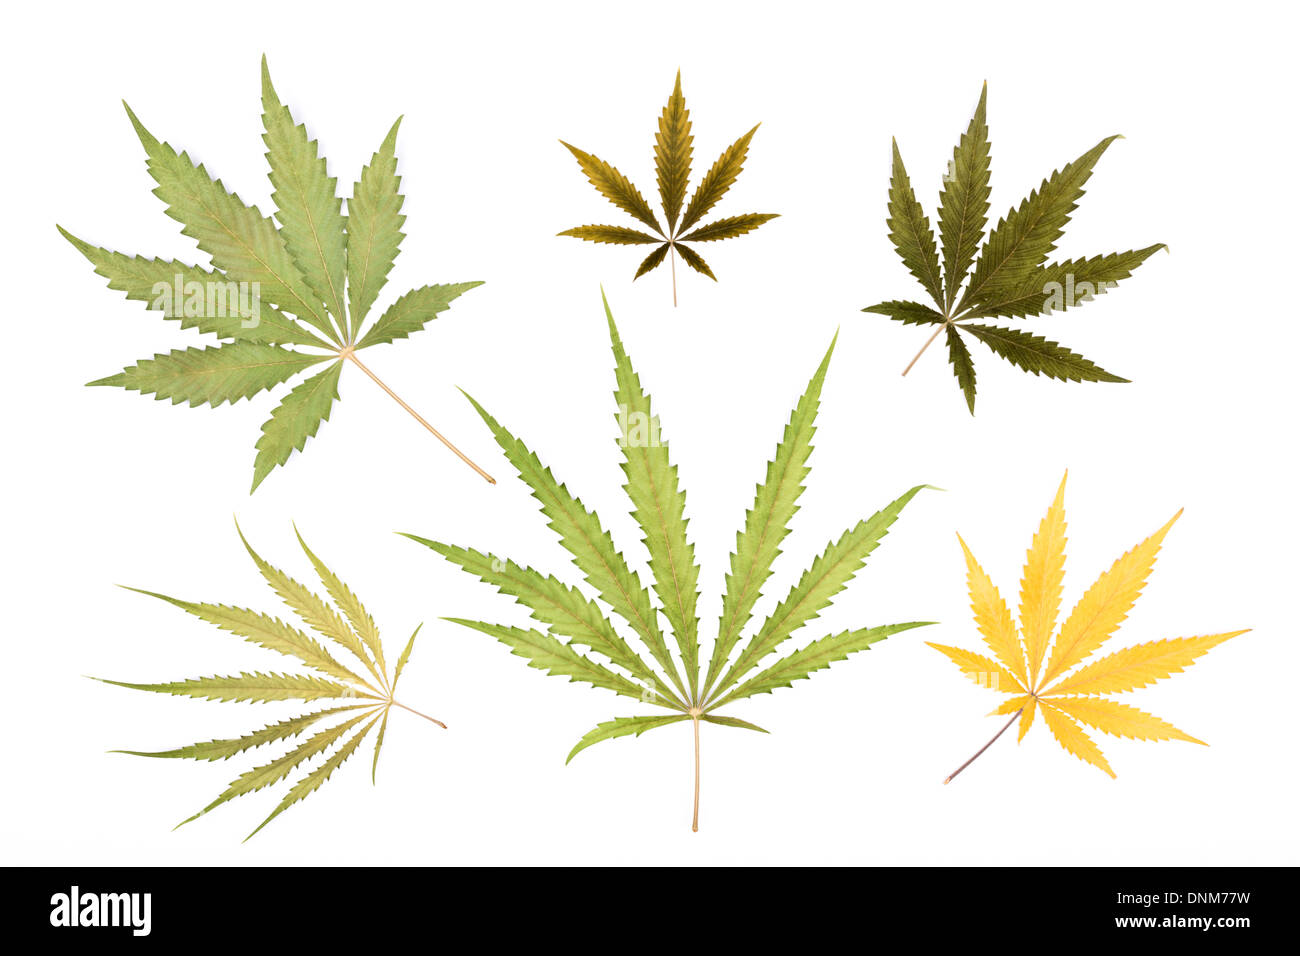 A variety of cannabis sativa leaves isolated on white background. - Stock Image